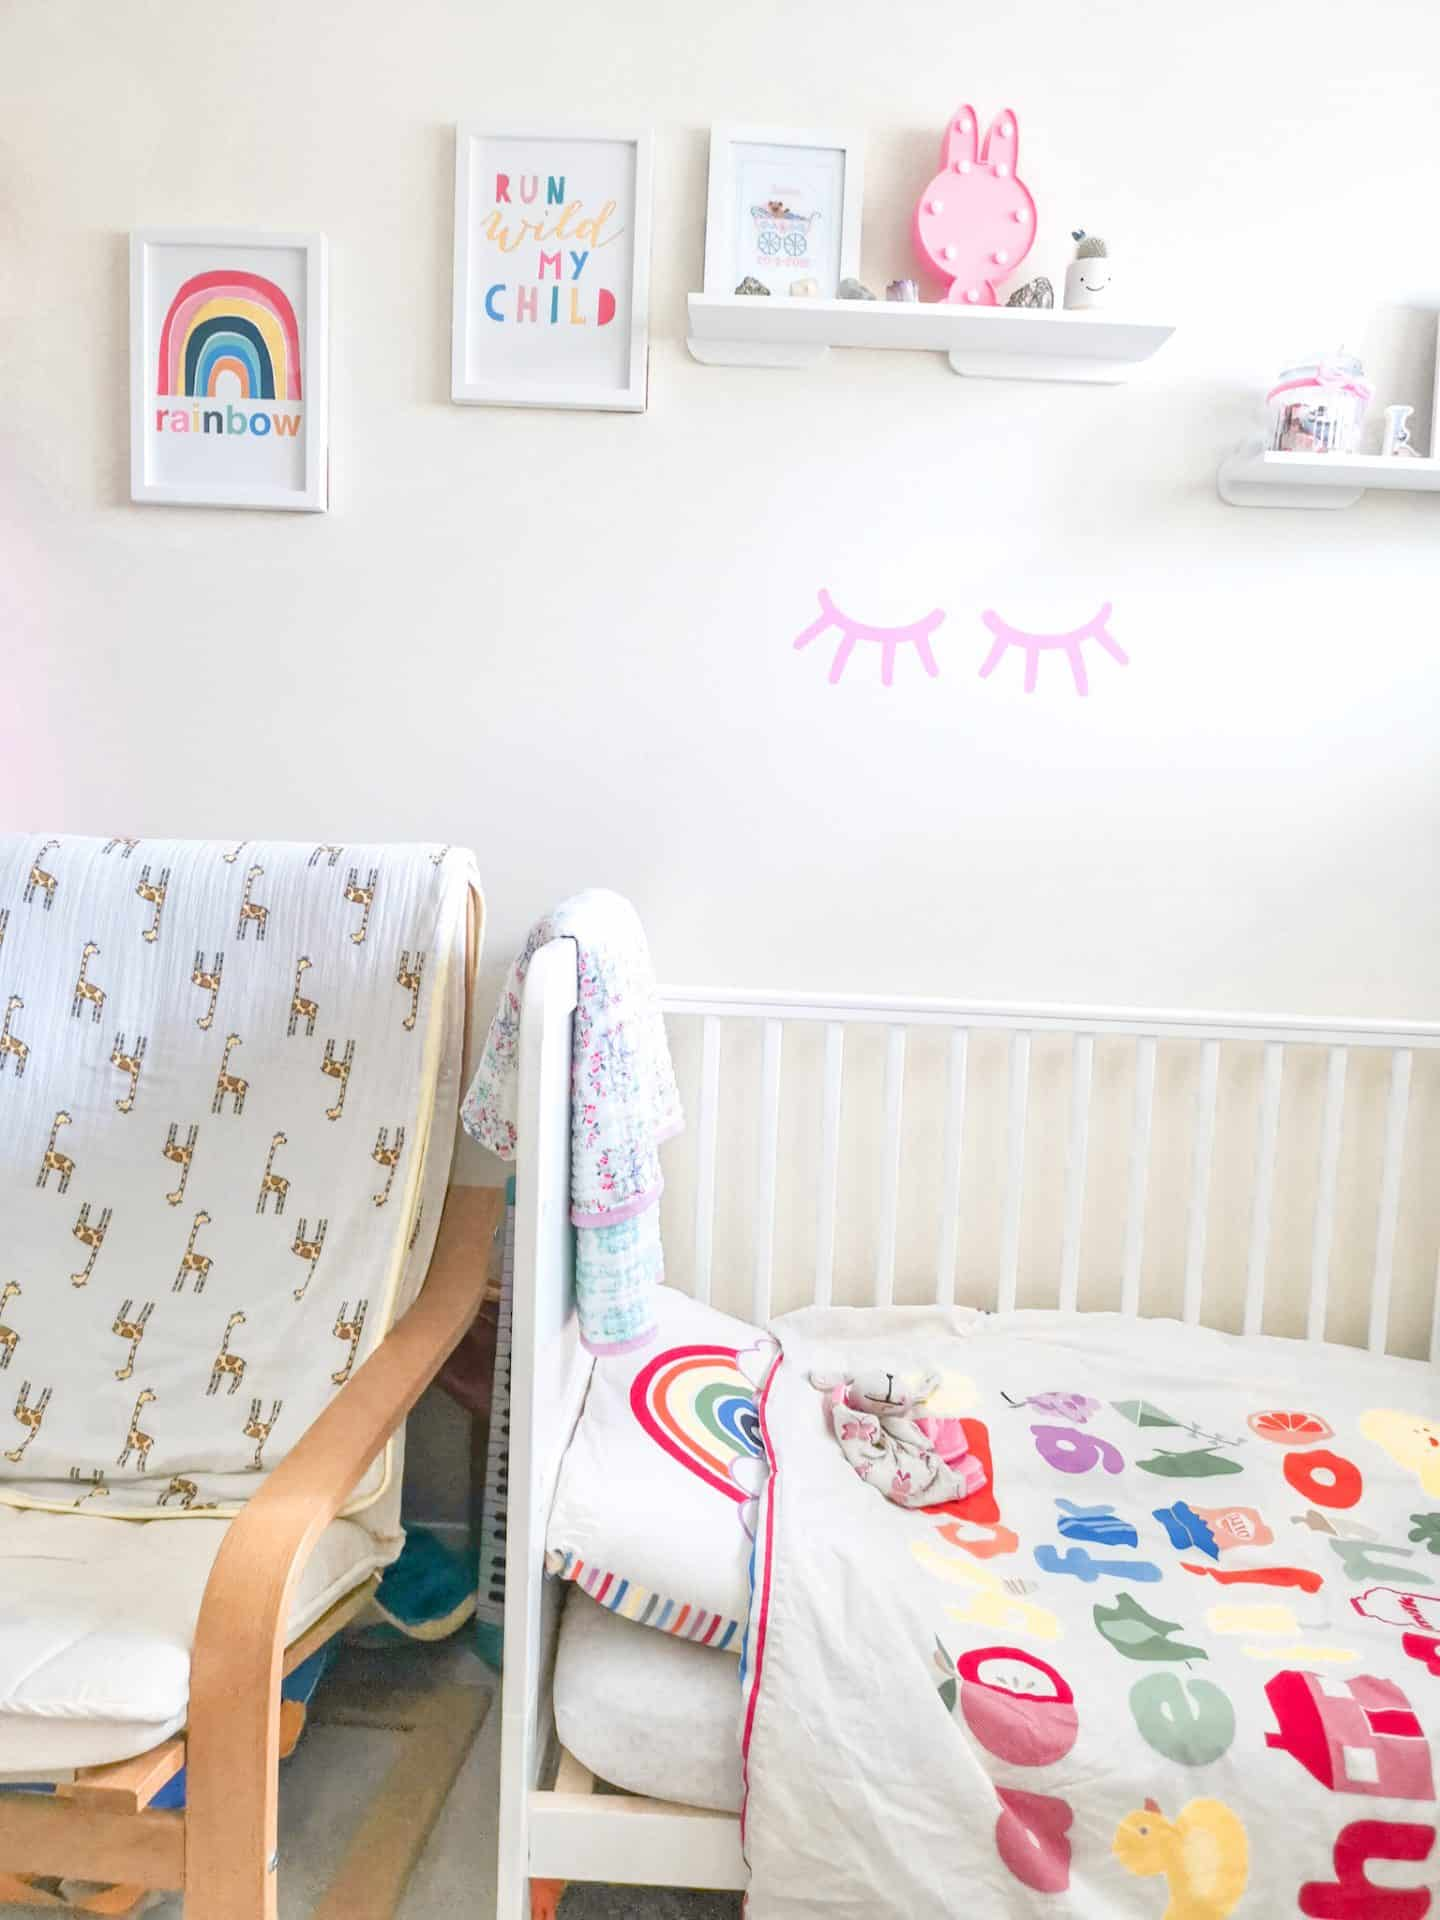 Gorgeous toddler girl bedroom ideas + free posters!